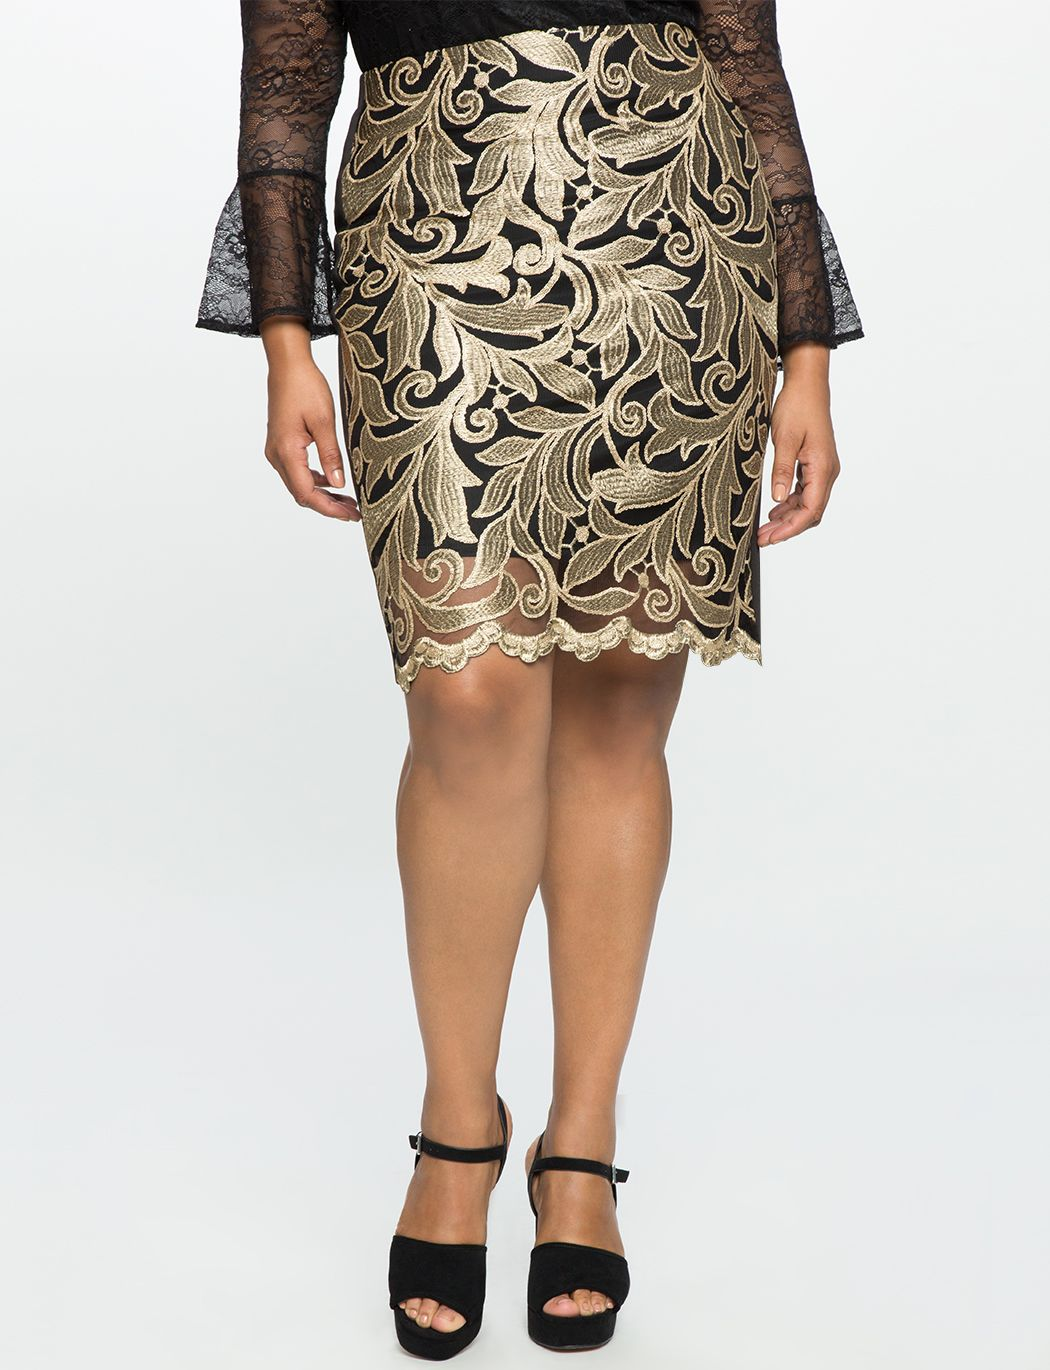 12796d5af82 Embroidered Metallic Pencil Skirt Black and Gold